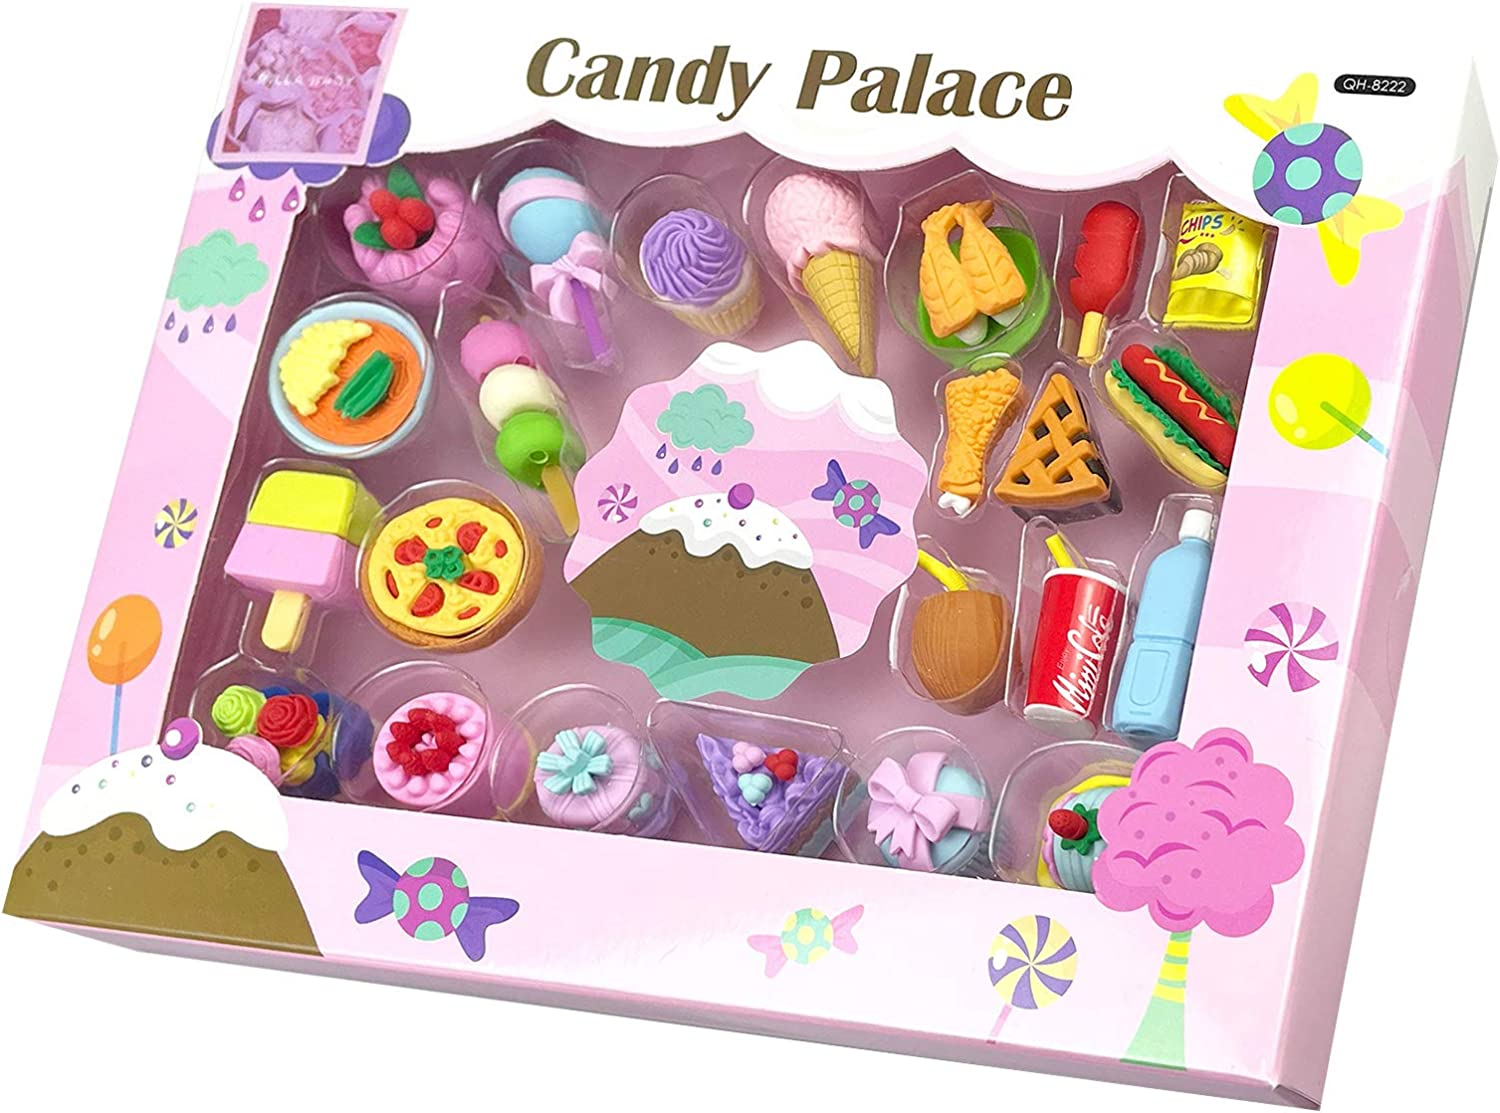 Rillla Mini Puzzle Cool Food Erasers for Kids, Tiny Fun Cute Ice Cream Cake Erasers Scented Pencil Iwako Erasers, Prizes for Kids Classroom Home Party School Gifts Box for Students (Candy Palace)